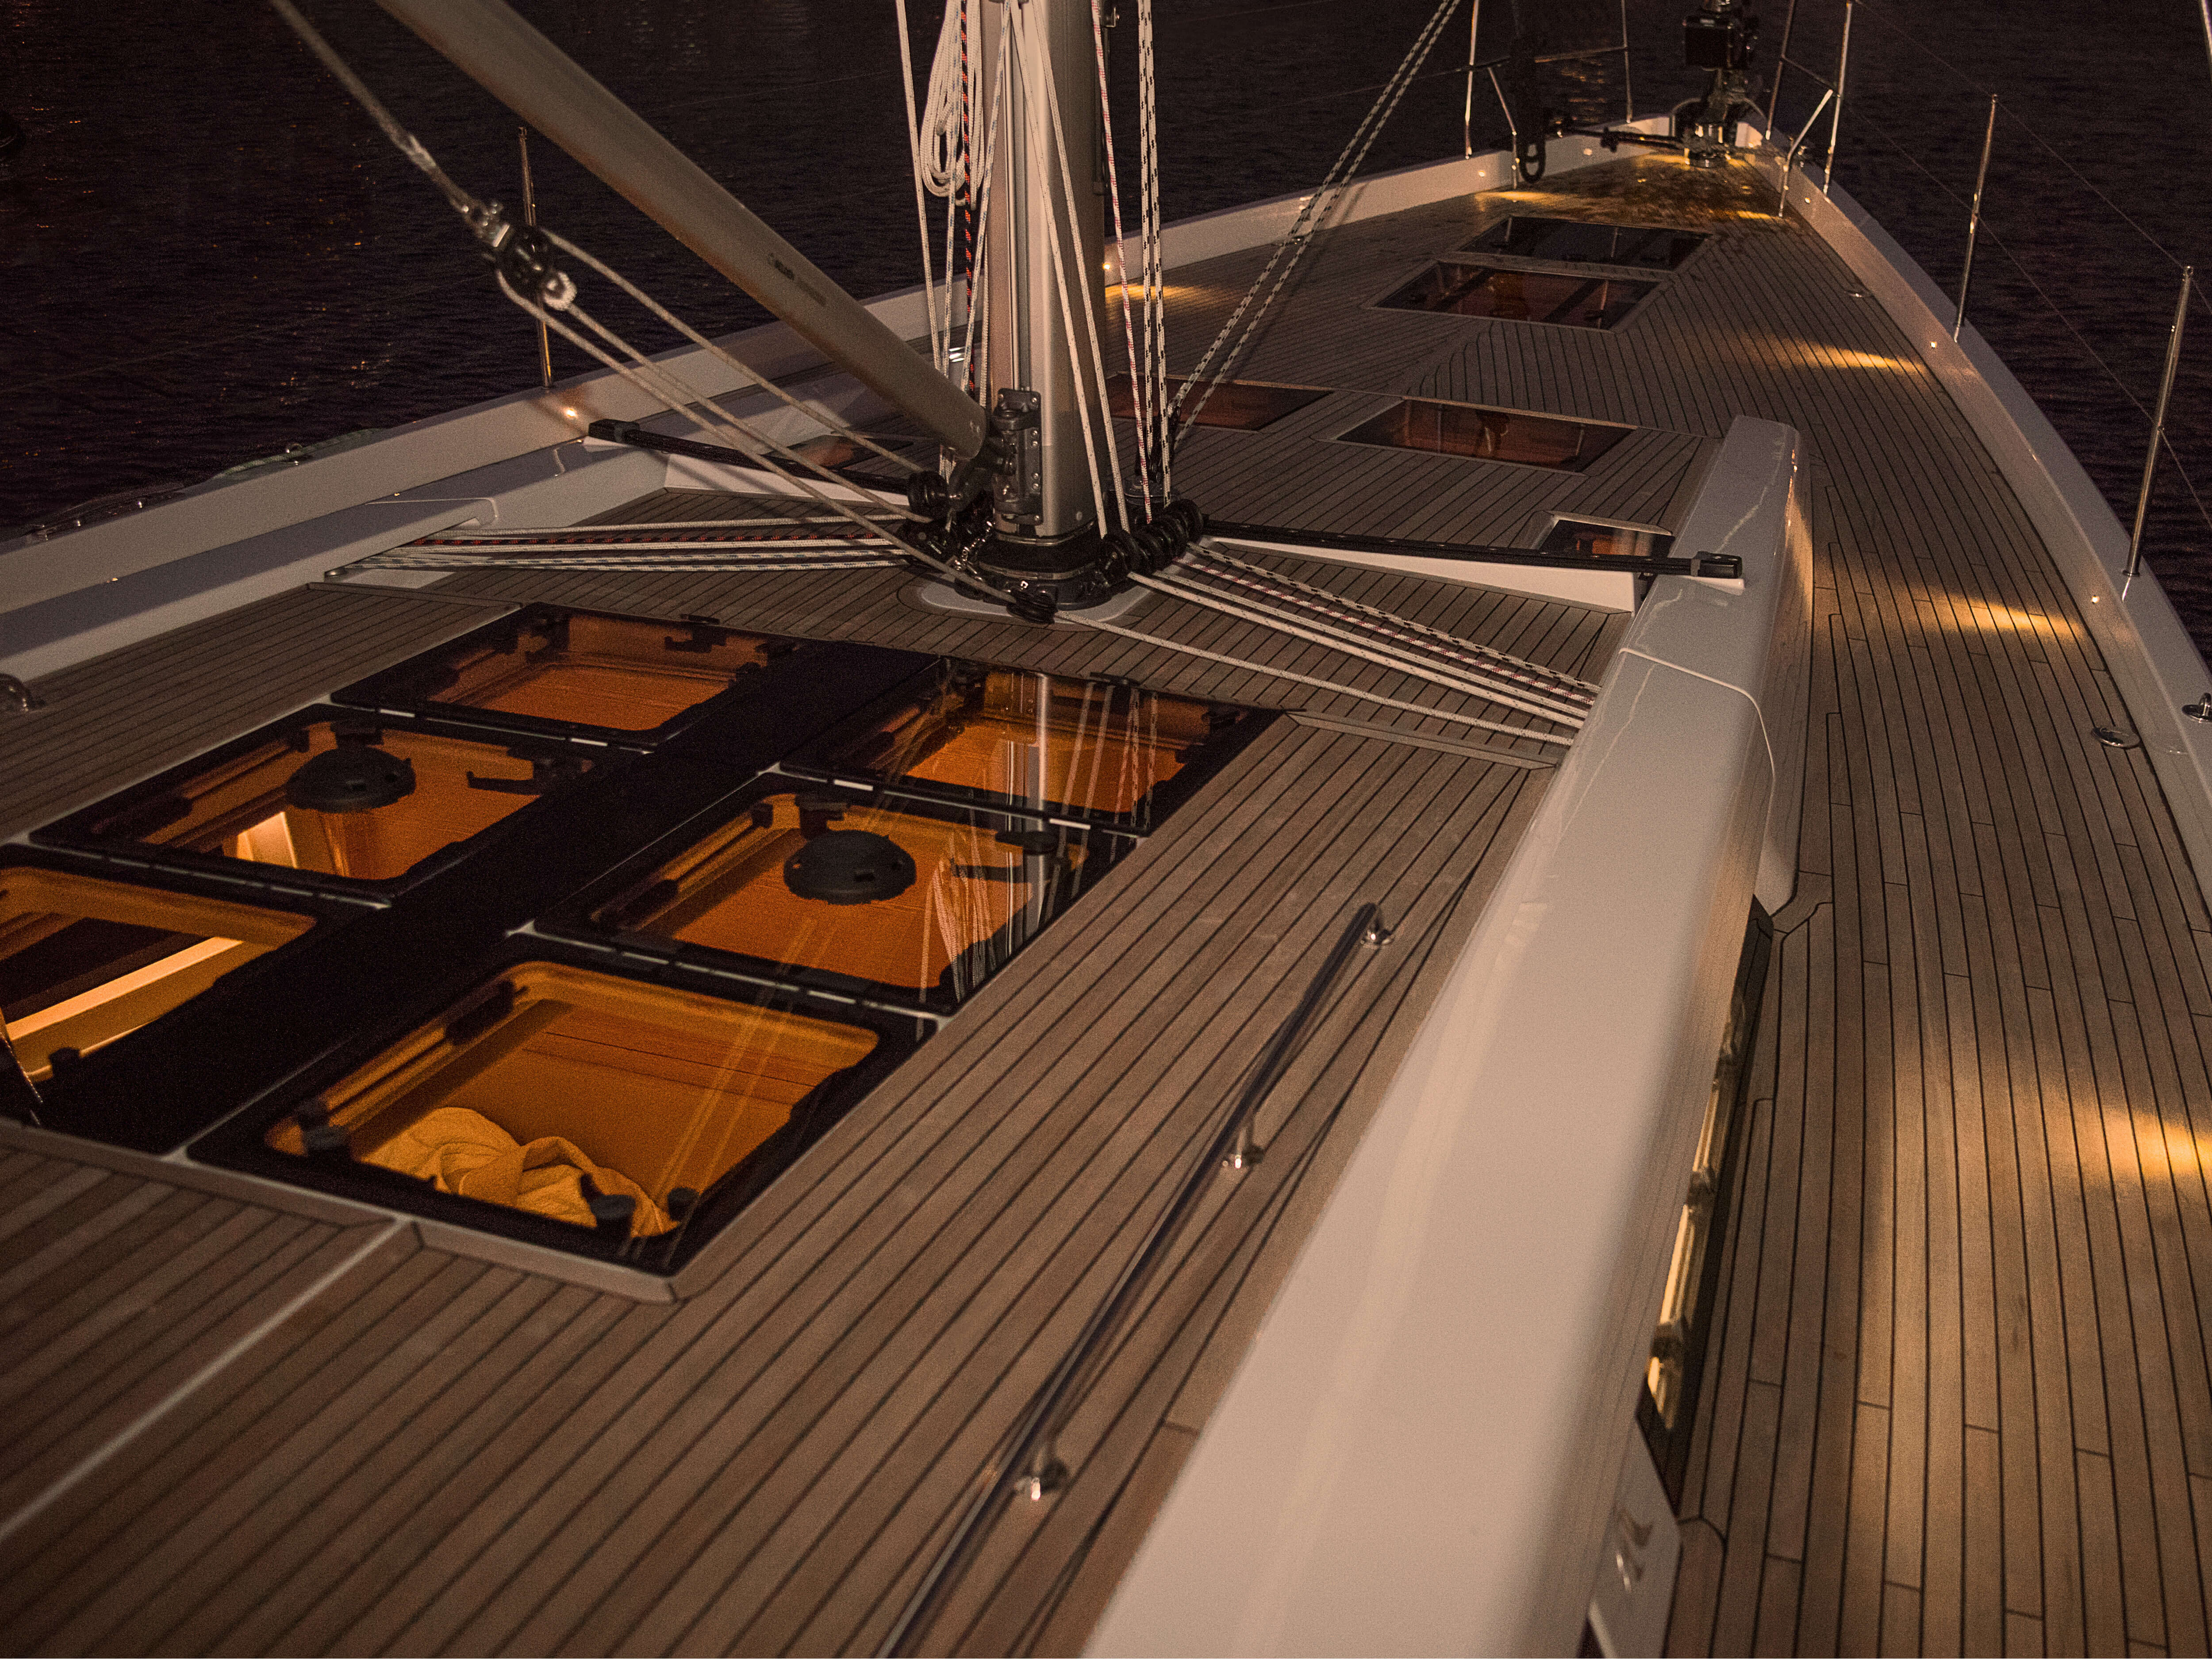 Hanse 588 Exterior at anchor | mast with lines, teak deck with deck hatches | Hanse